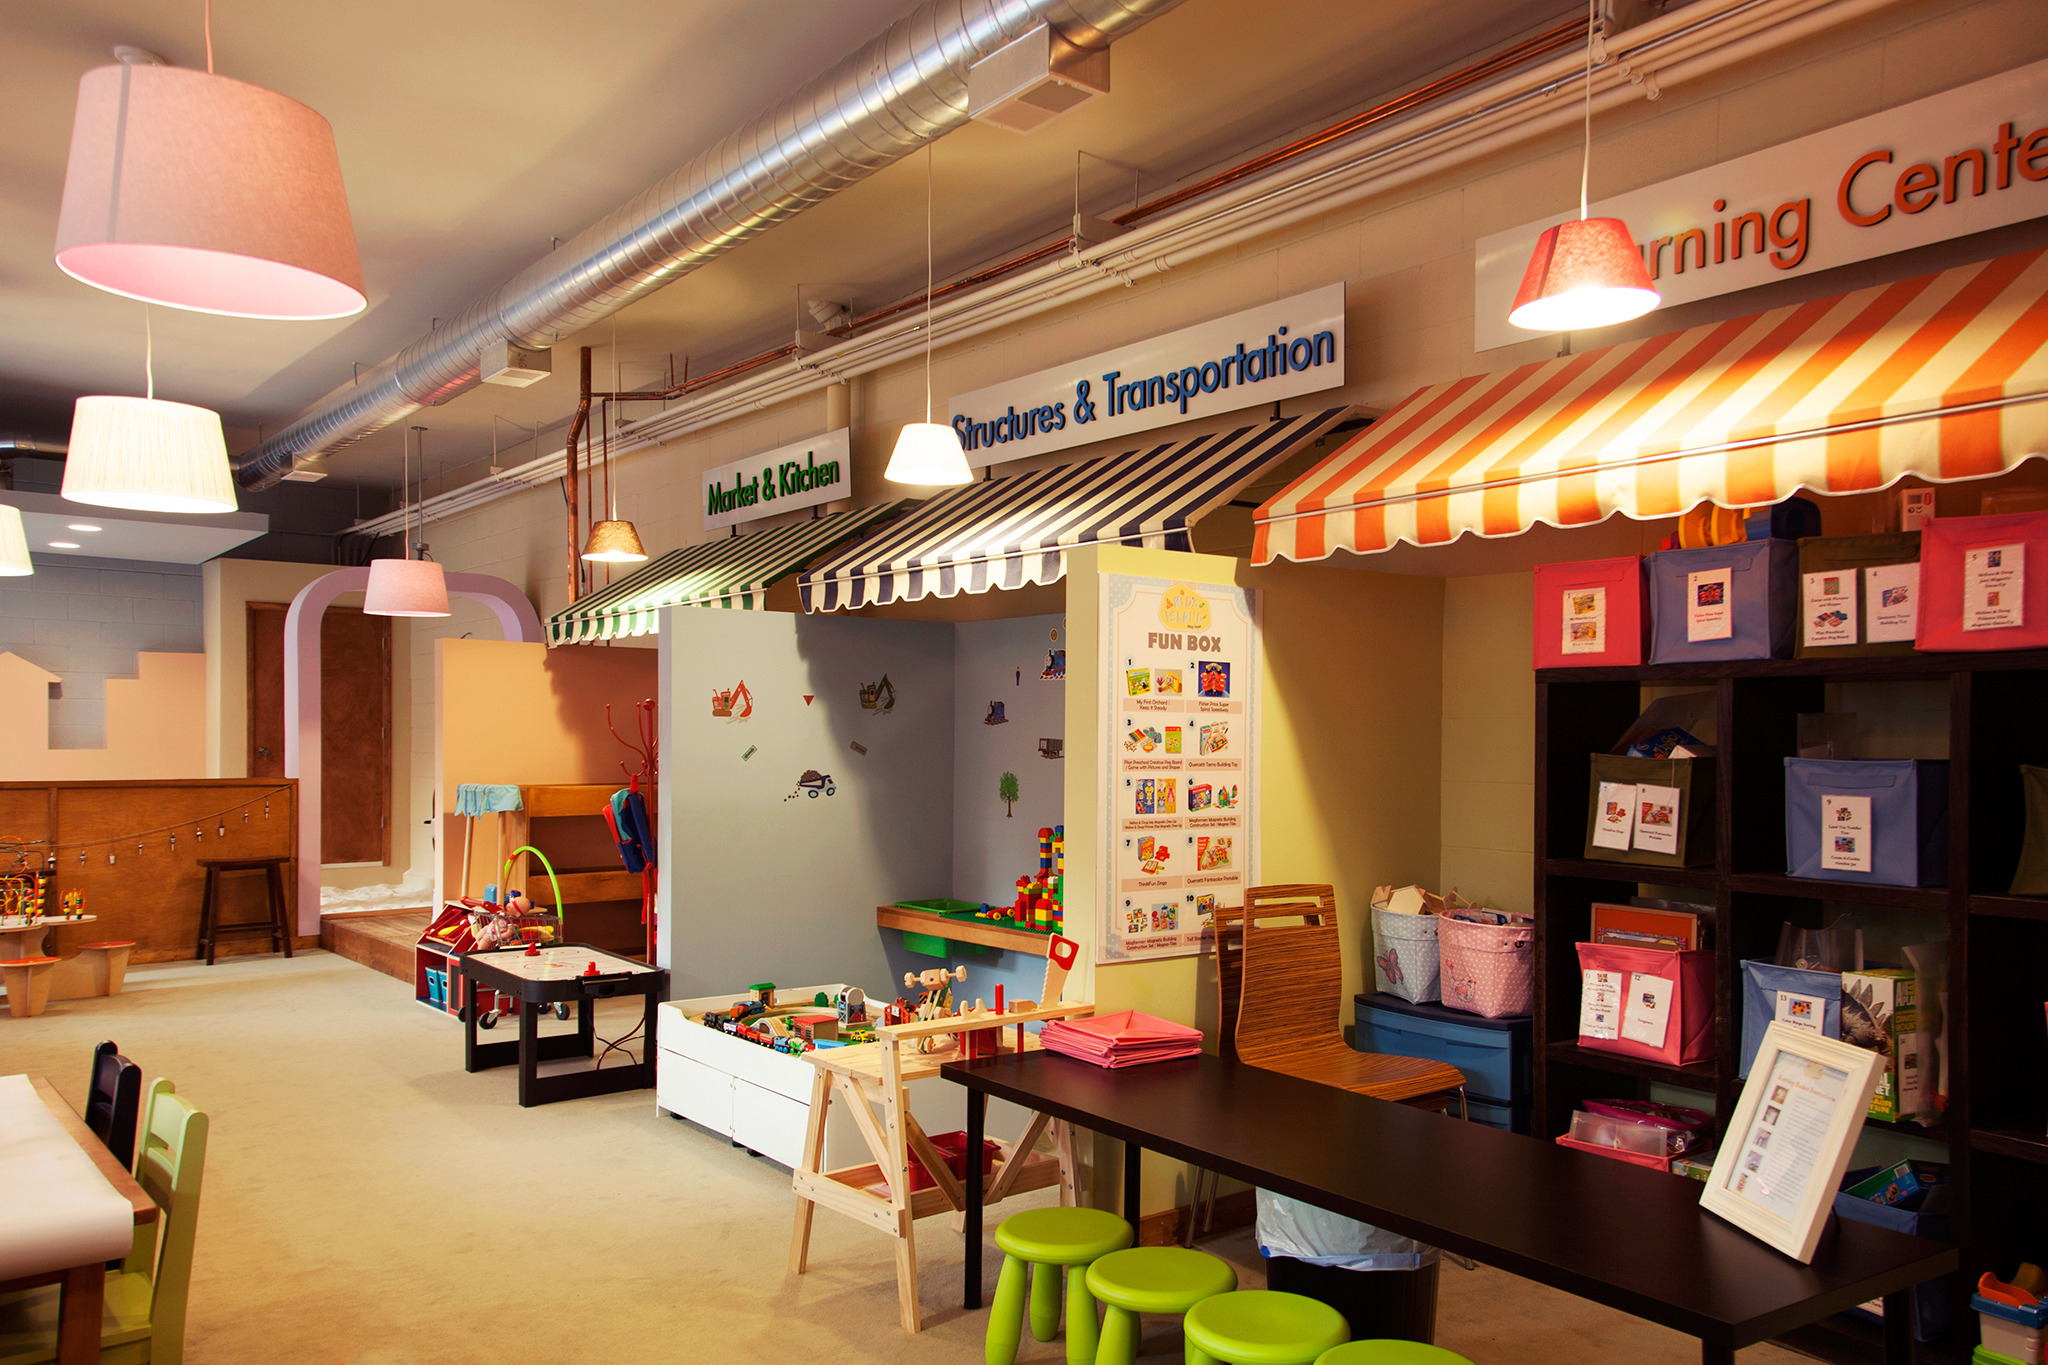 The Best Kids Indoor Playgrounds In Chicago For Antsy Kids